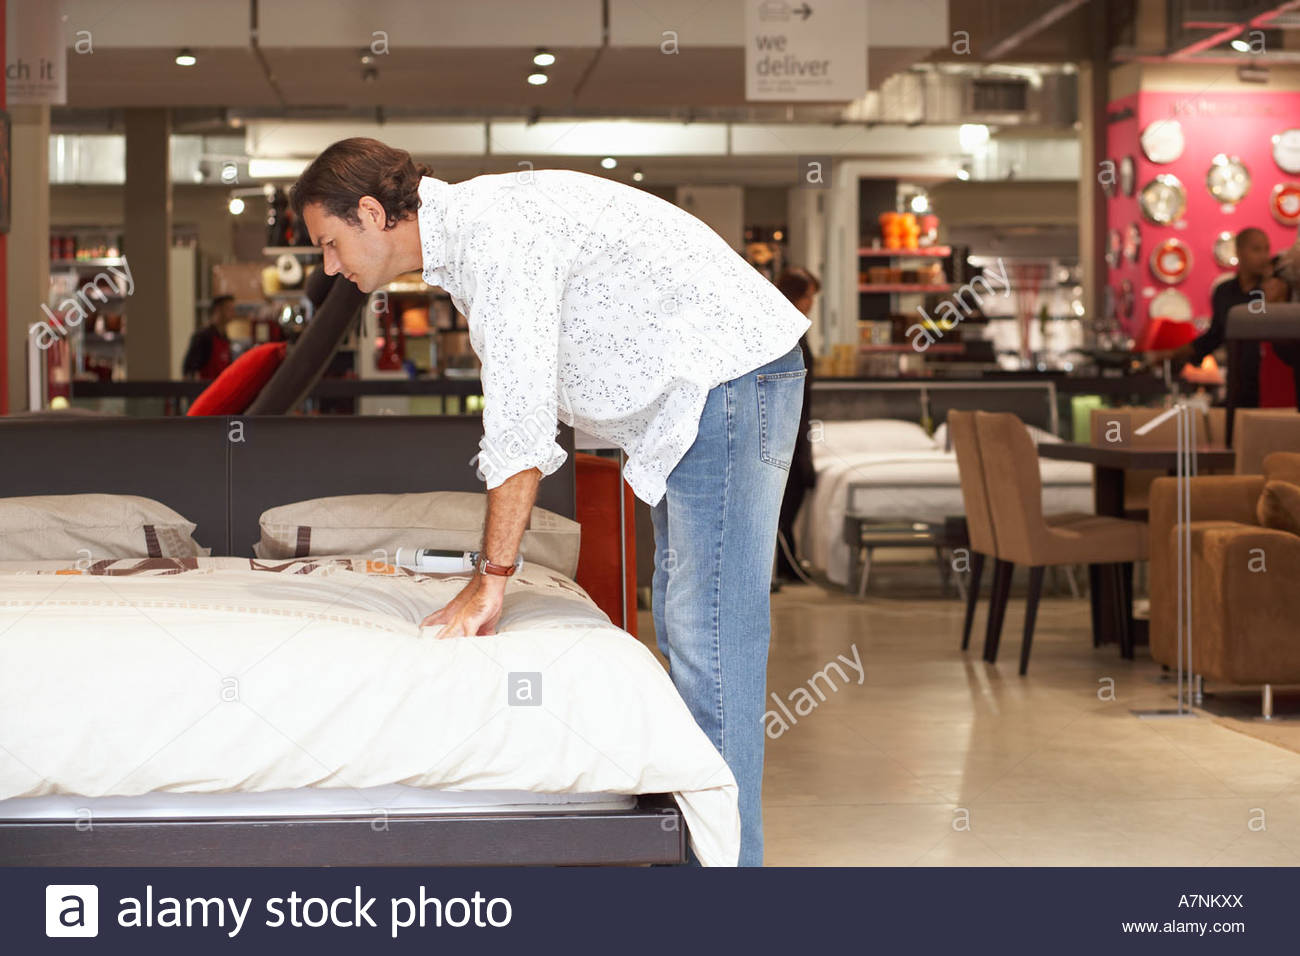 man testing mattress on new bed in furniture shop bending down side